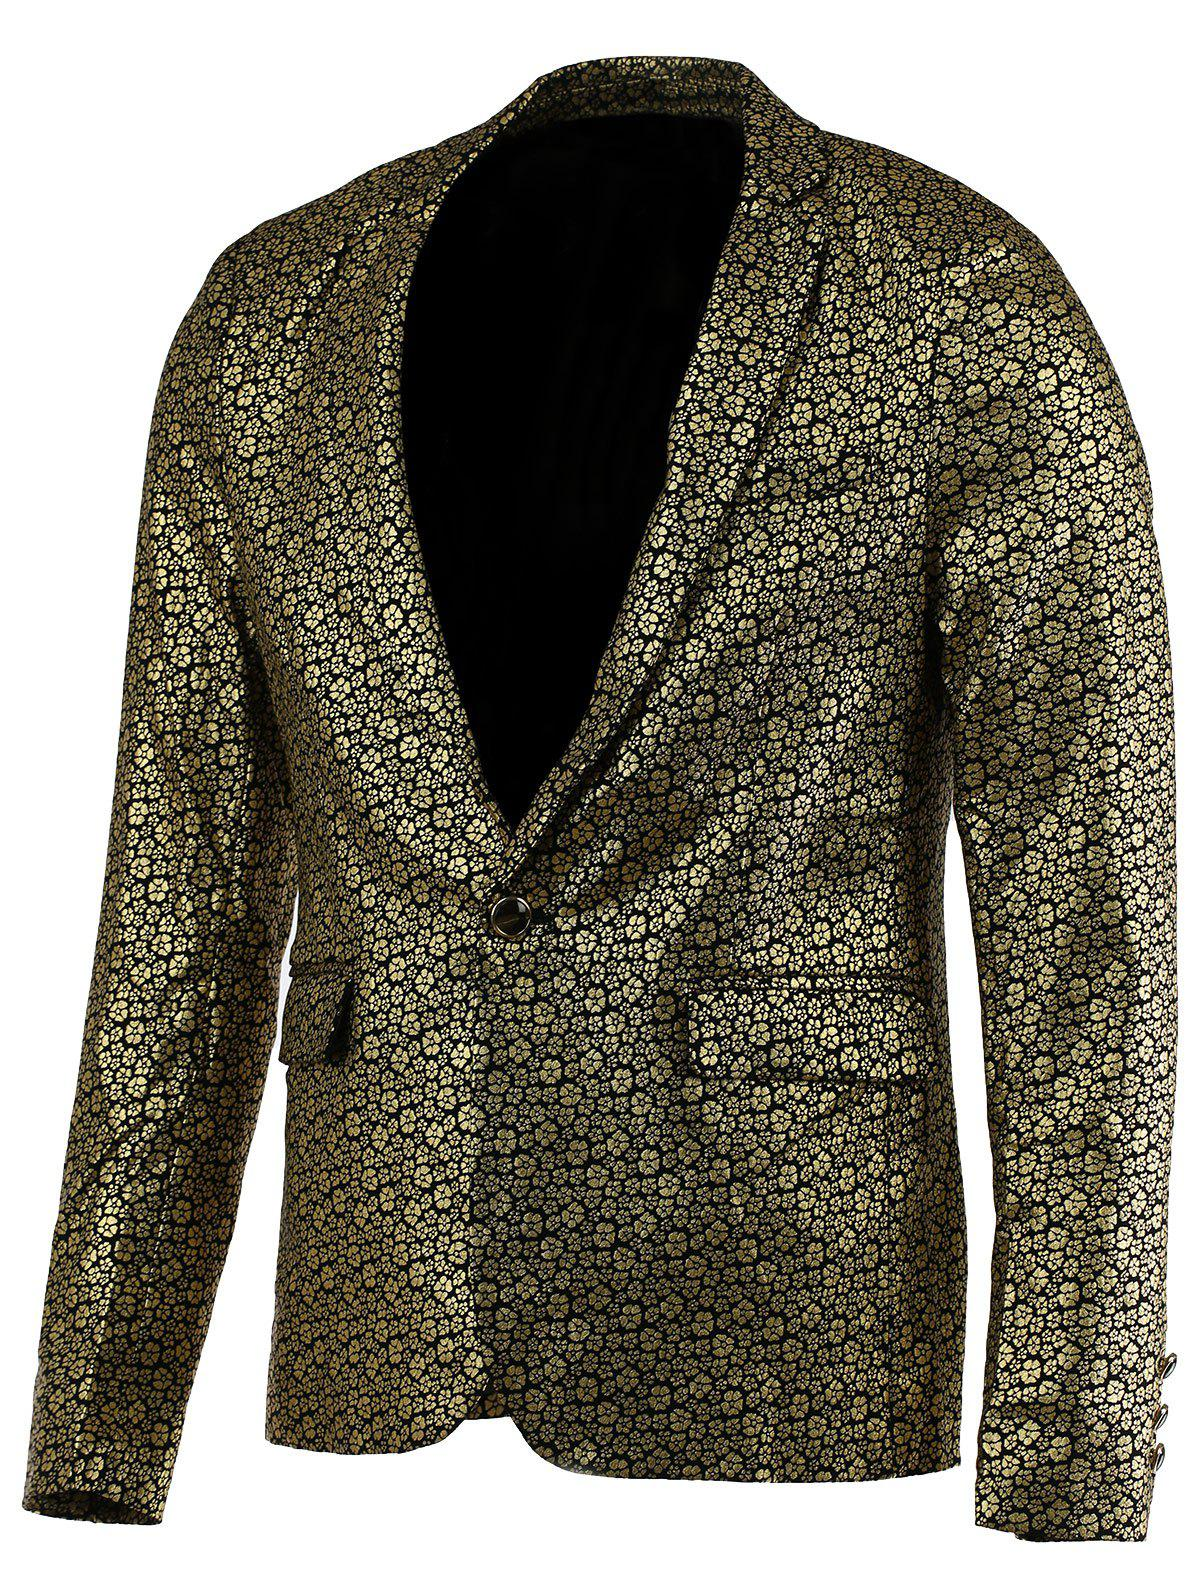 Floral Hot Stamping Impression revers manches longues hommes s 'Blazer - Or M